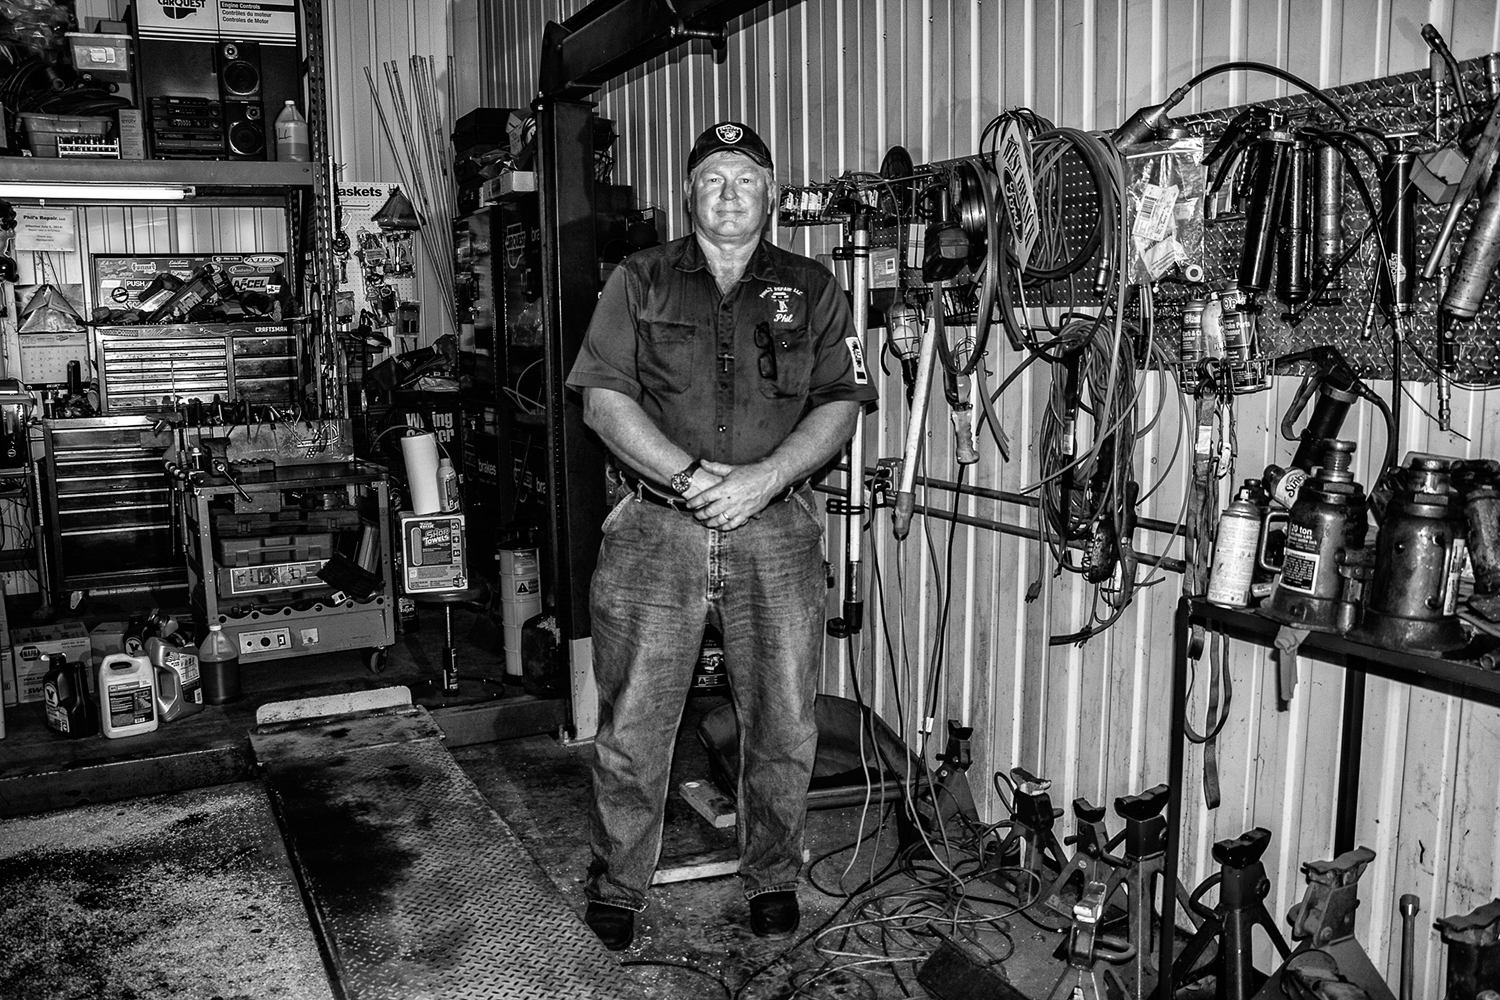 Johnson County supervisor candidate Phil Hemingway stands for a portrait in his mechanic's shop on Wednesday, Aug. 22, 2018.